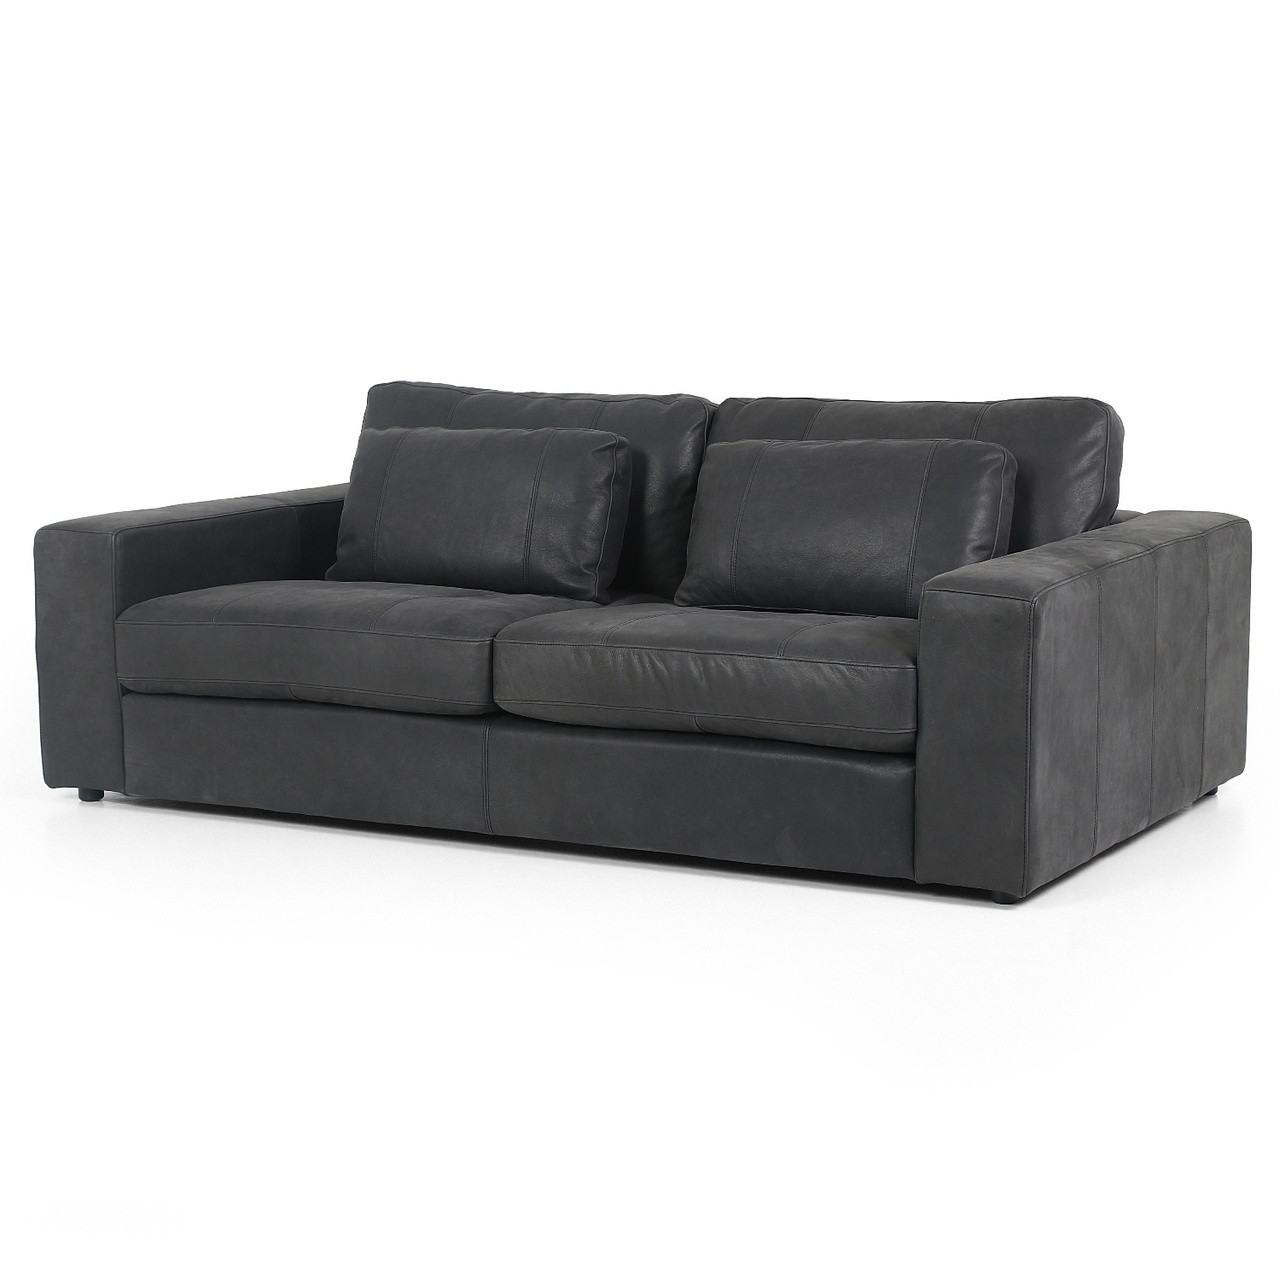 Square Sofa Bloor Black Leather Square Arm Sofa 82